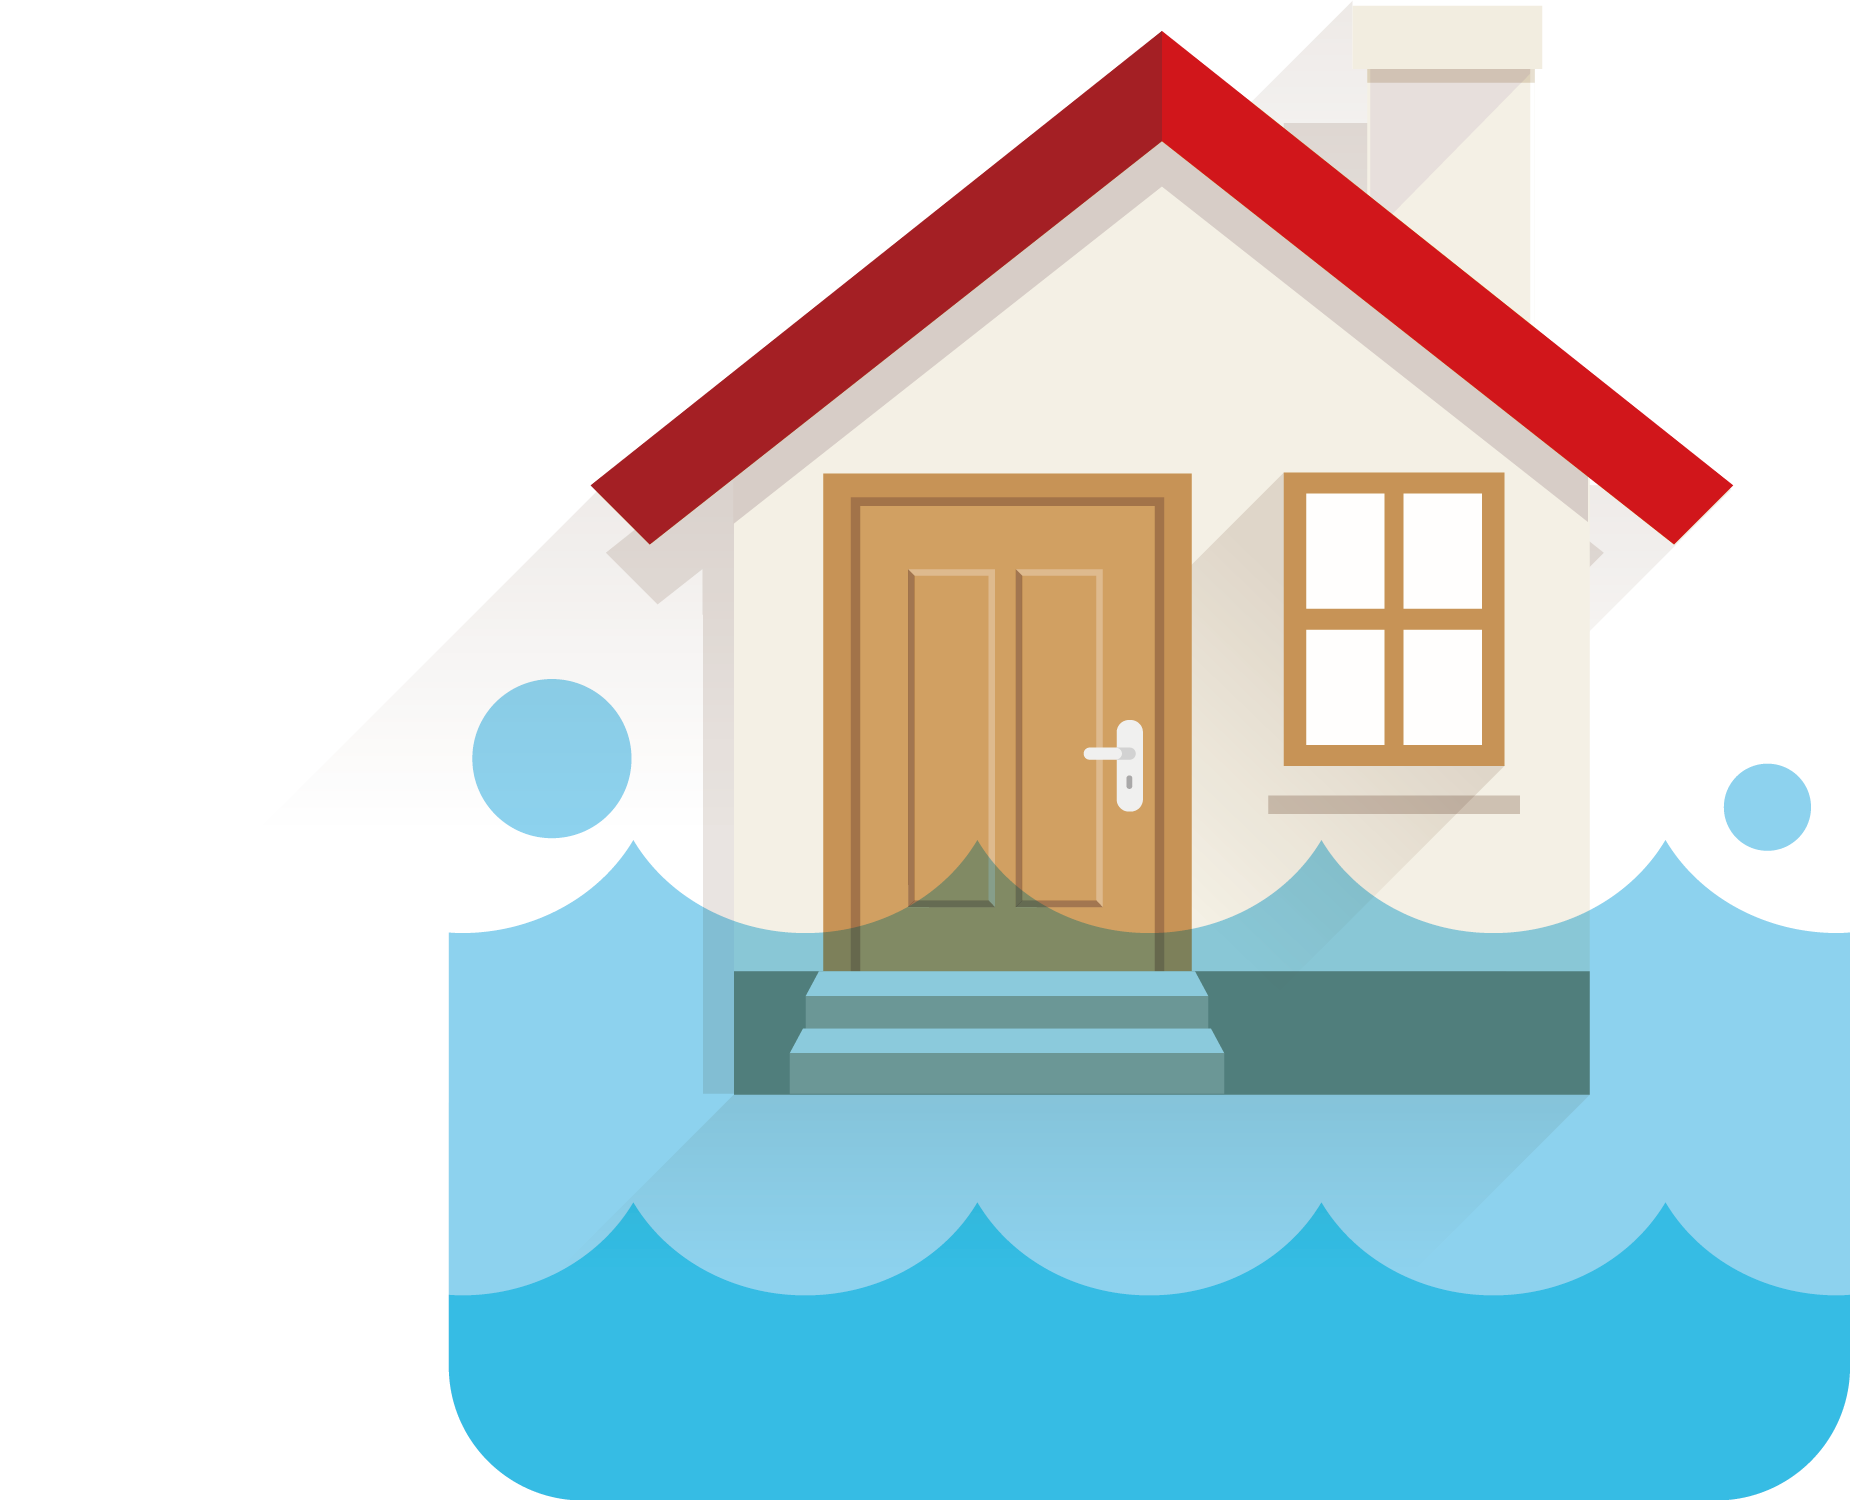 Houses clipart flooding, Houses flooding Transparent FREE.